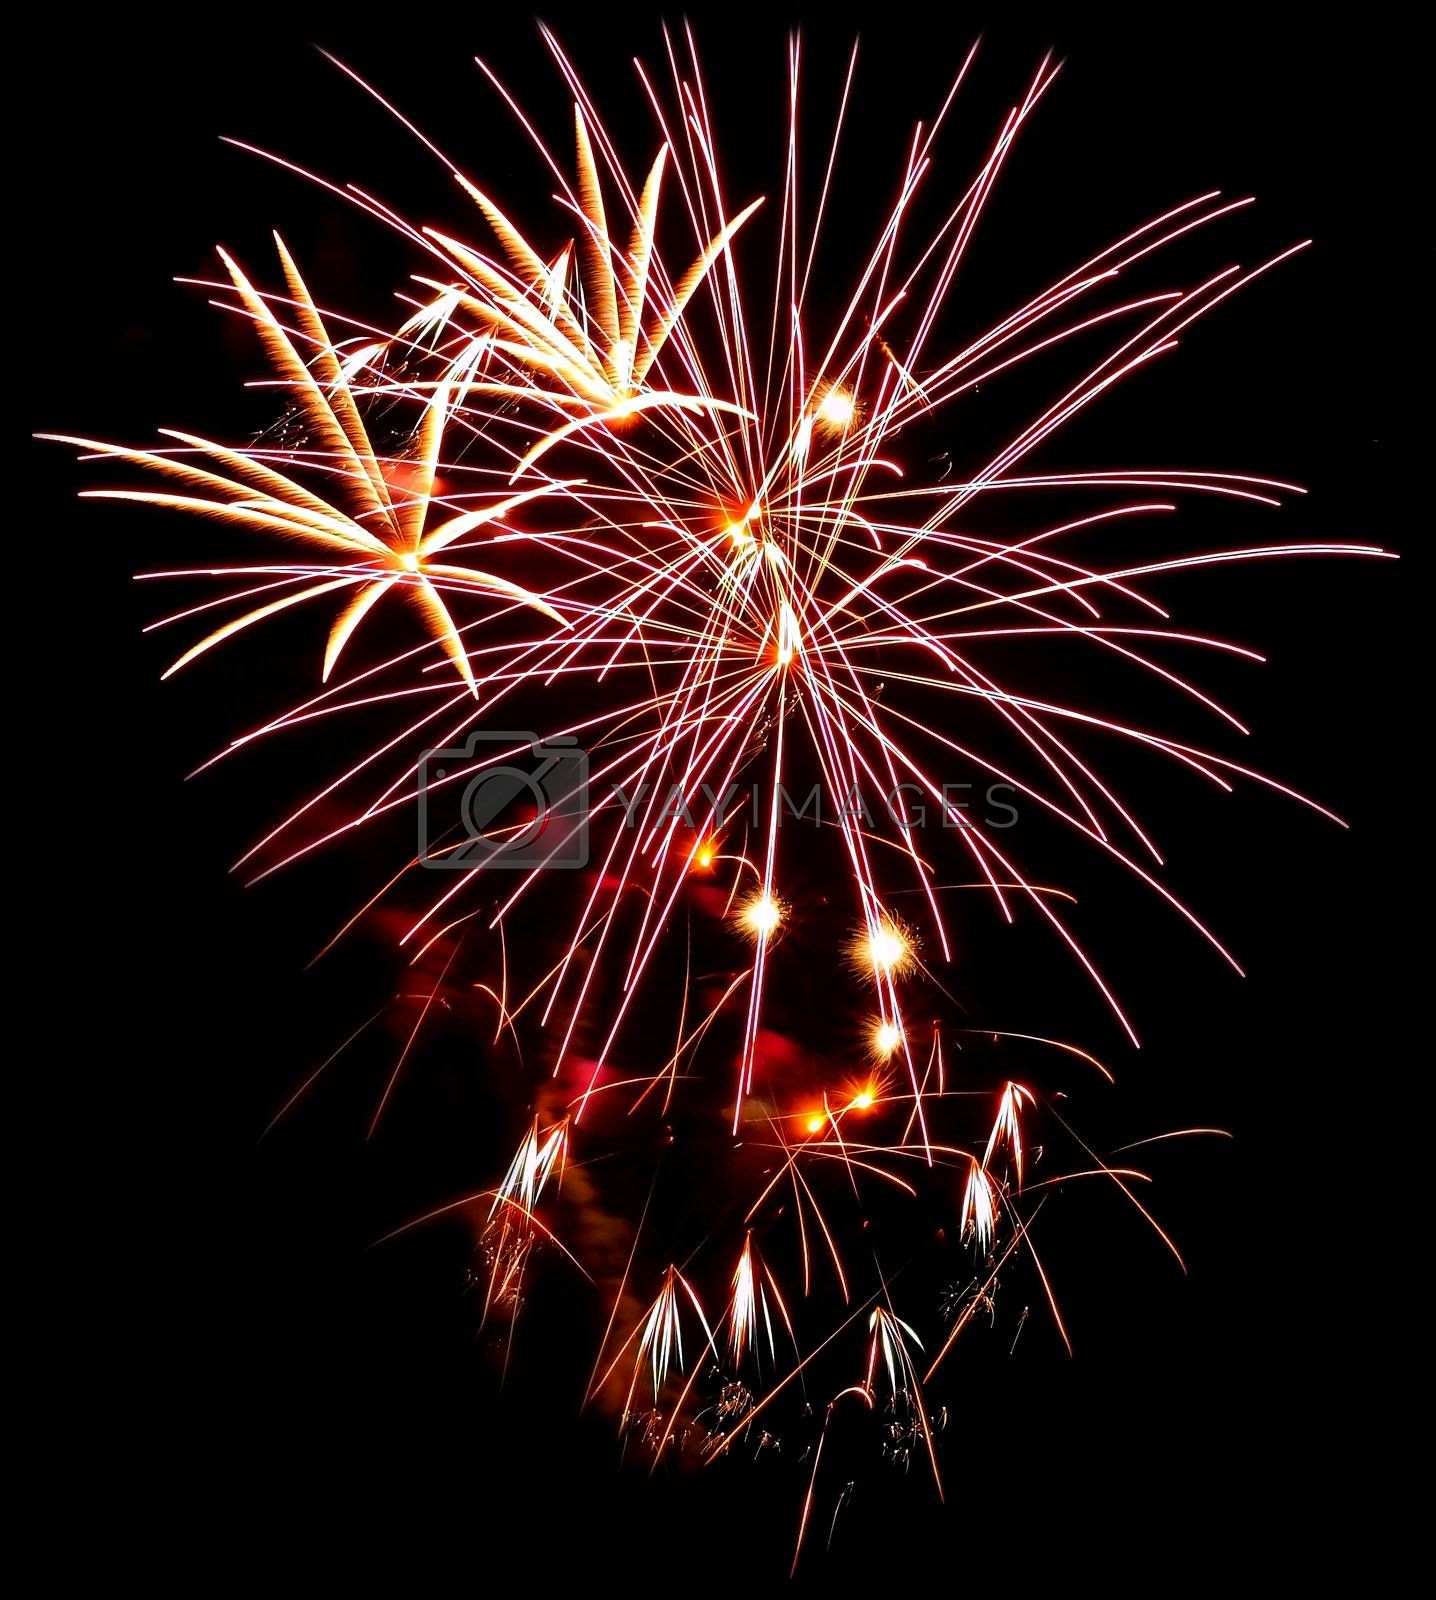 Colorful Fireworks Isolated on a Black Background